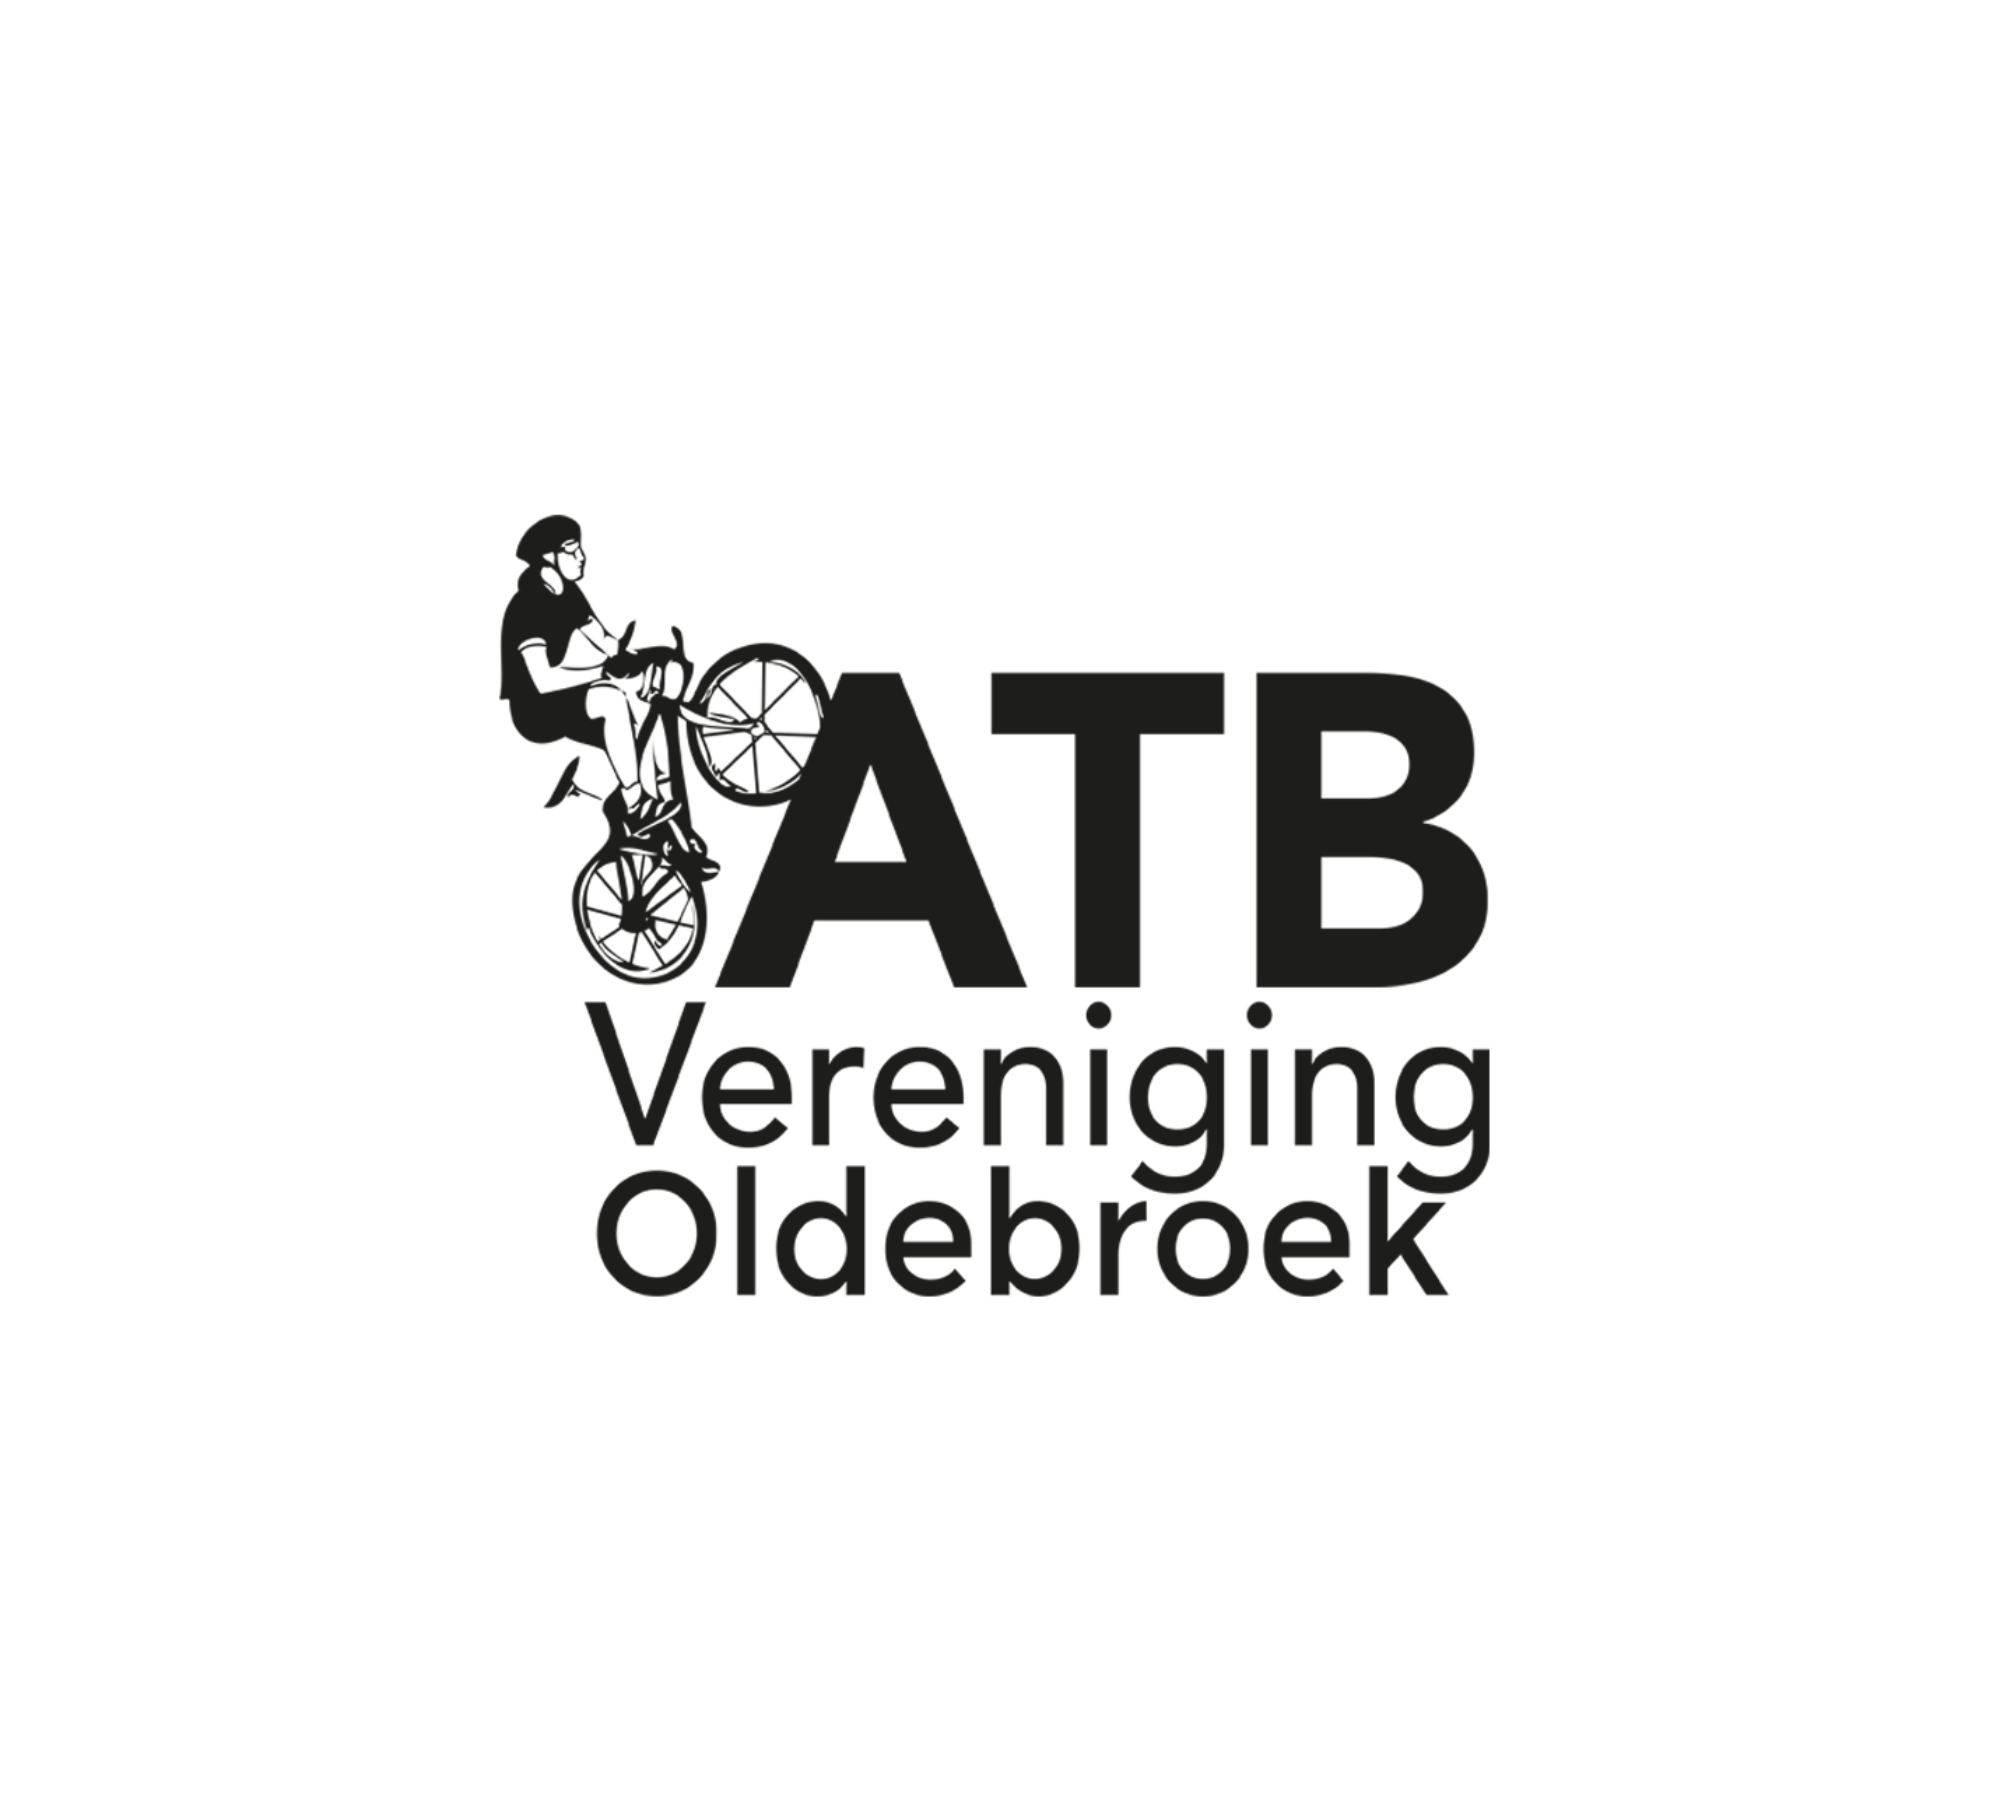 ATB Vereniging Oldebroek